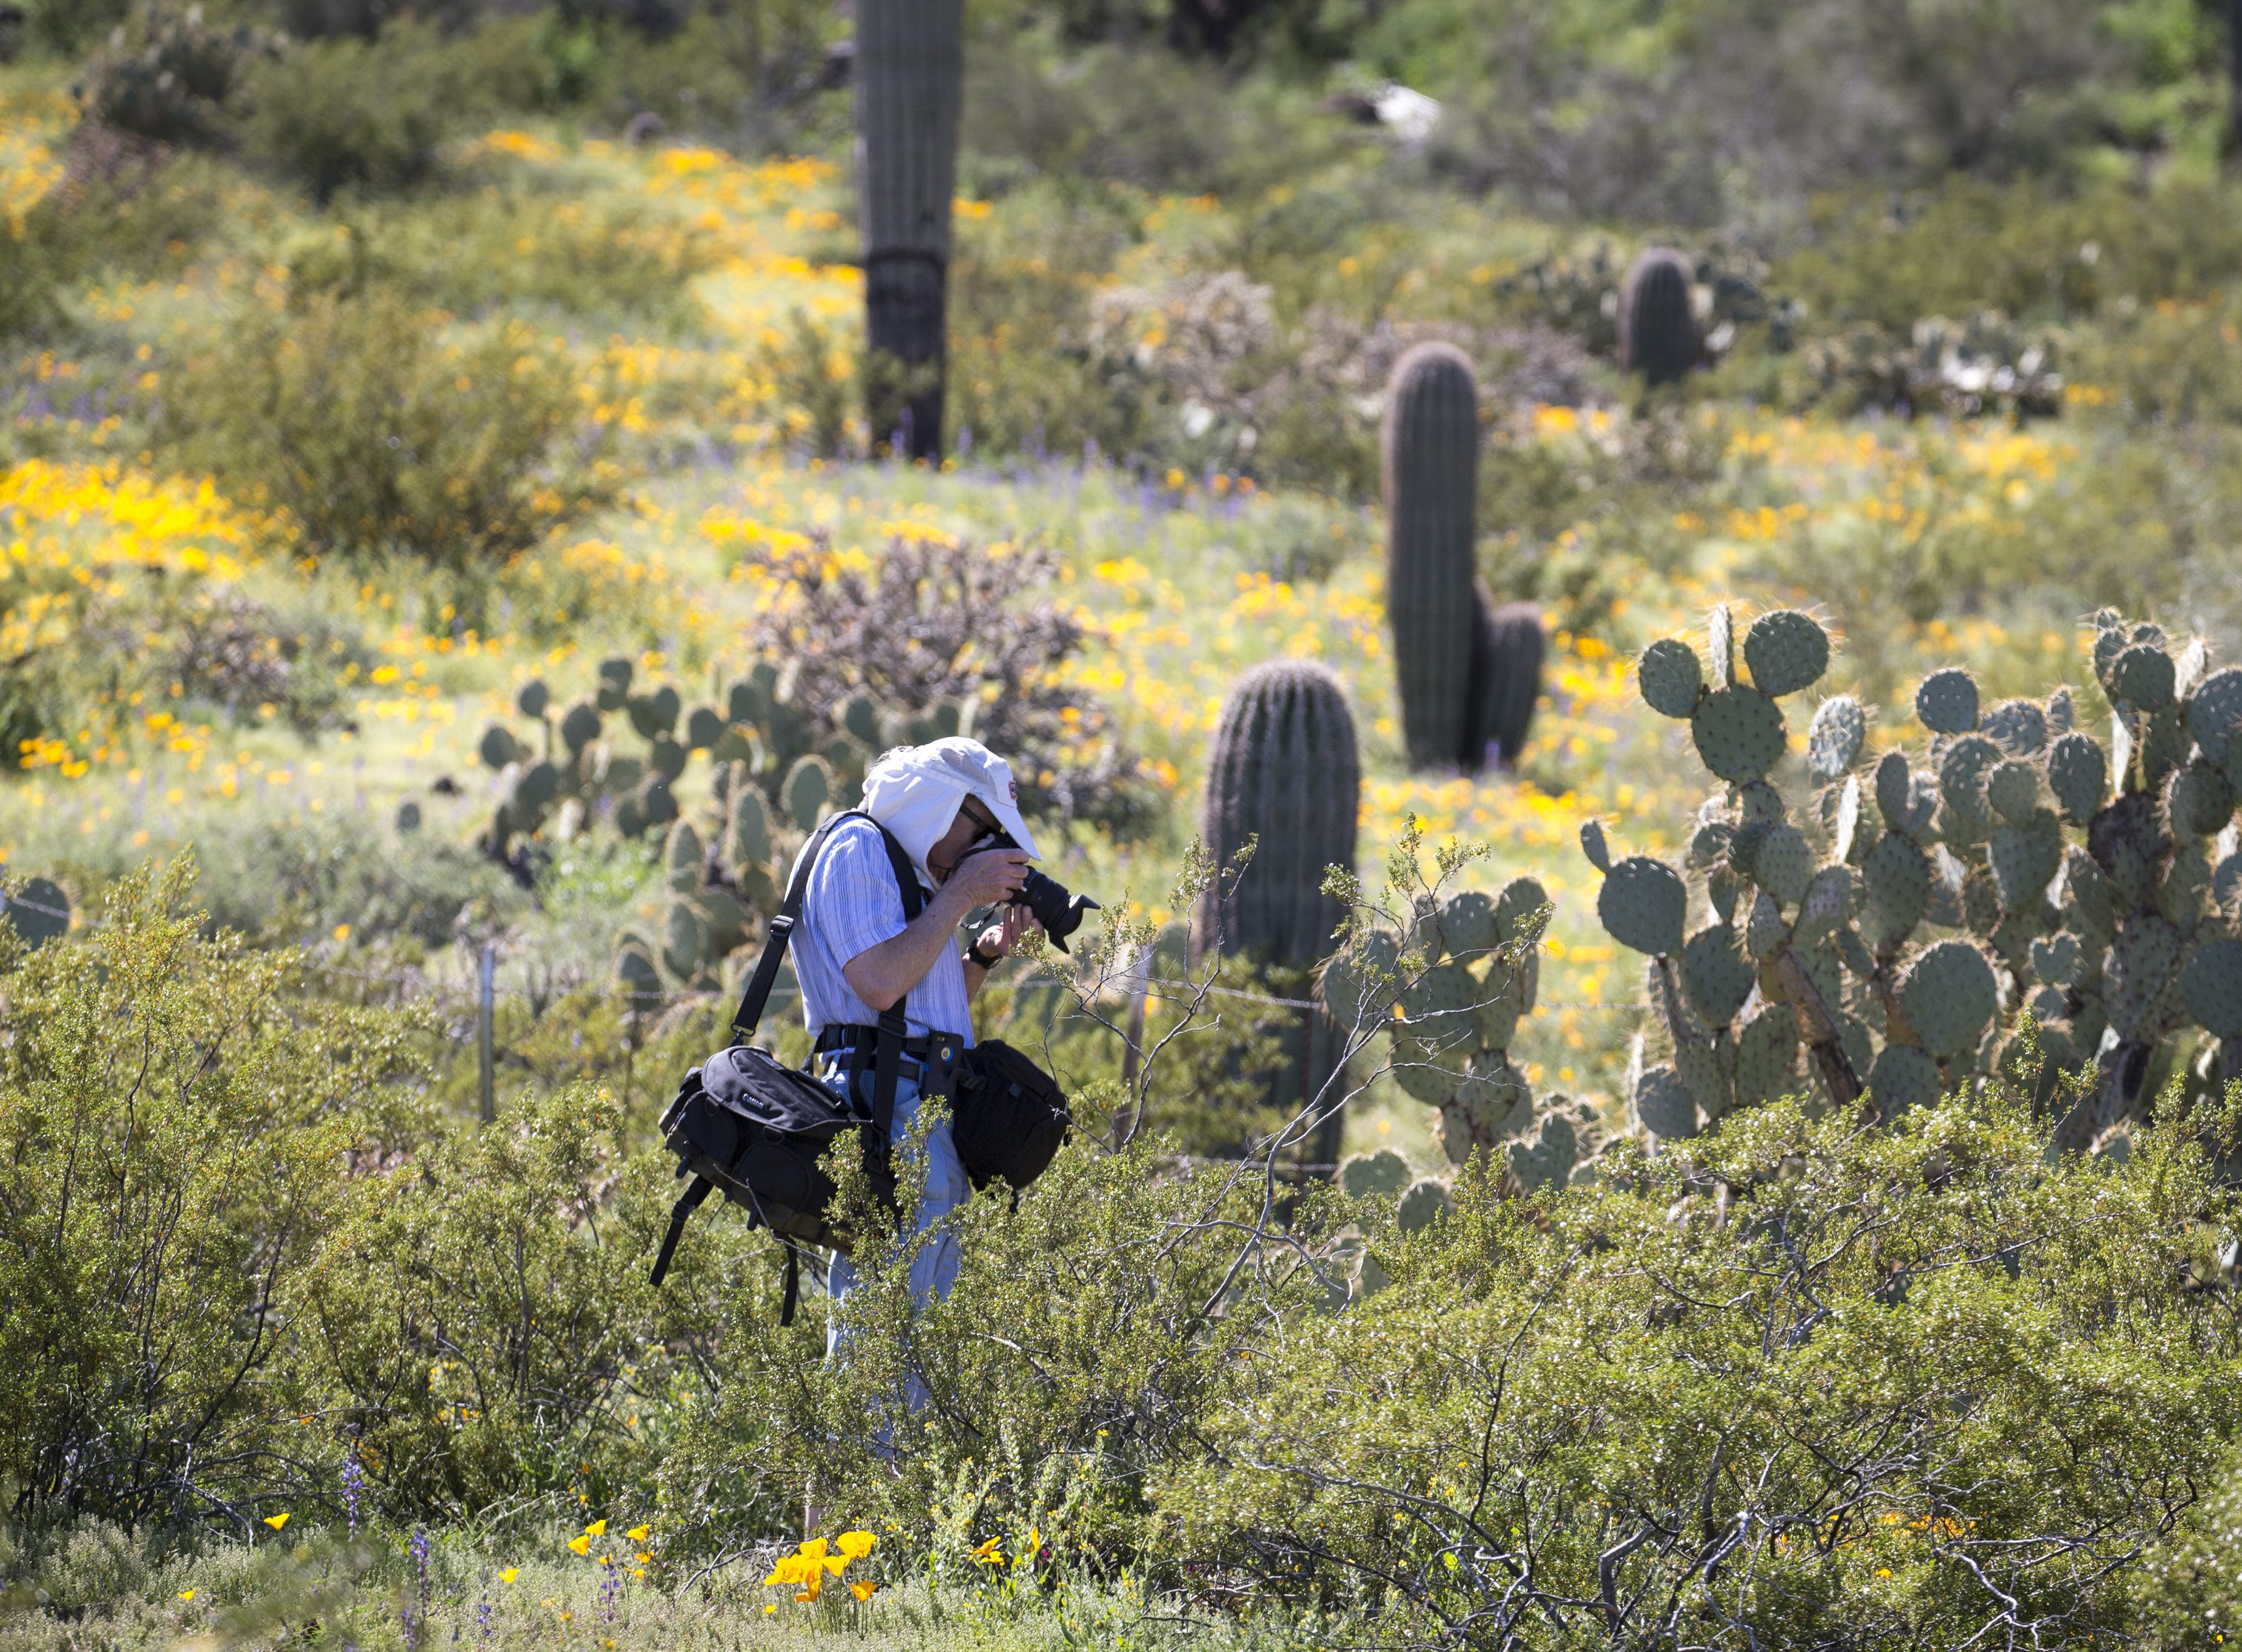 John Gilkey (Tucson) photographs wildflowers, March 5, 2019, at Picacho Peak State Park, Arizona.